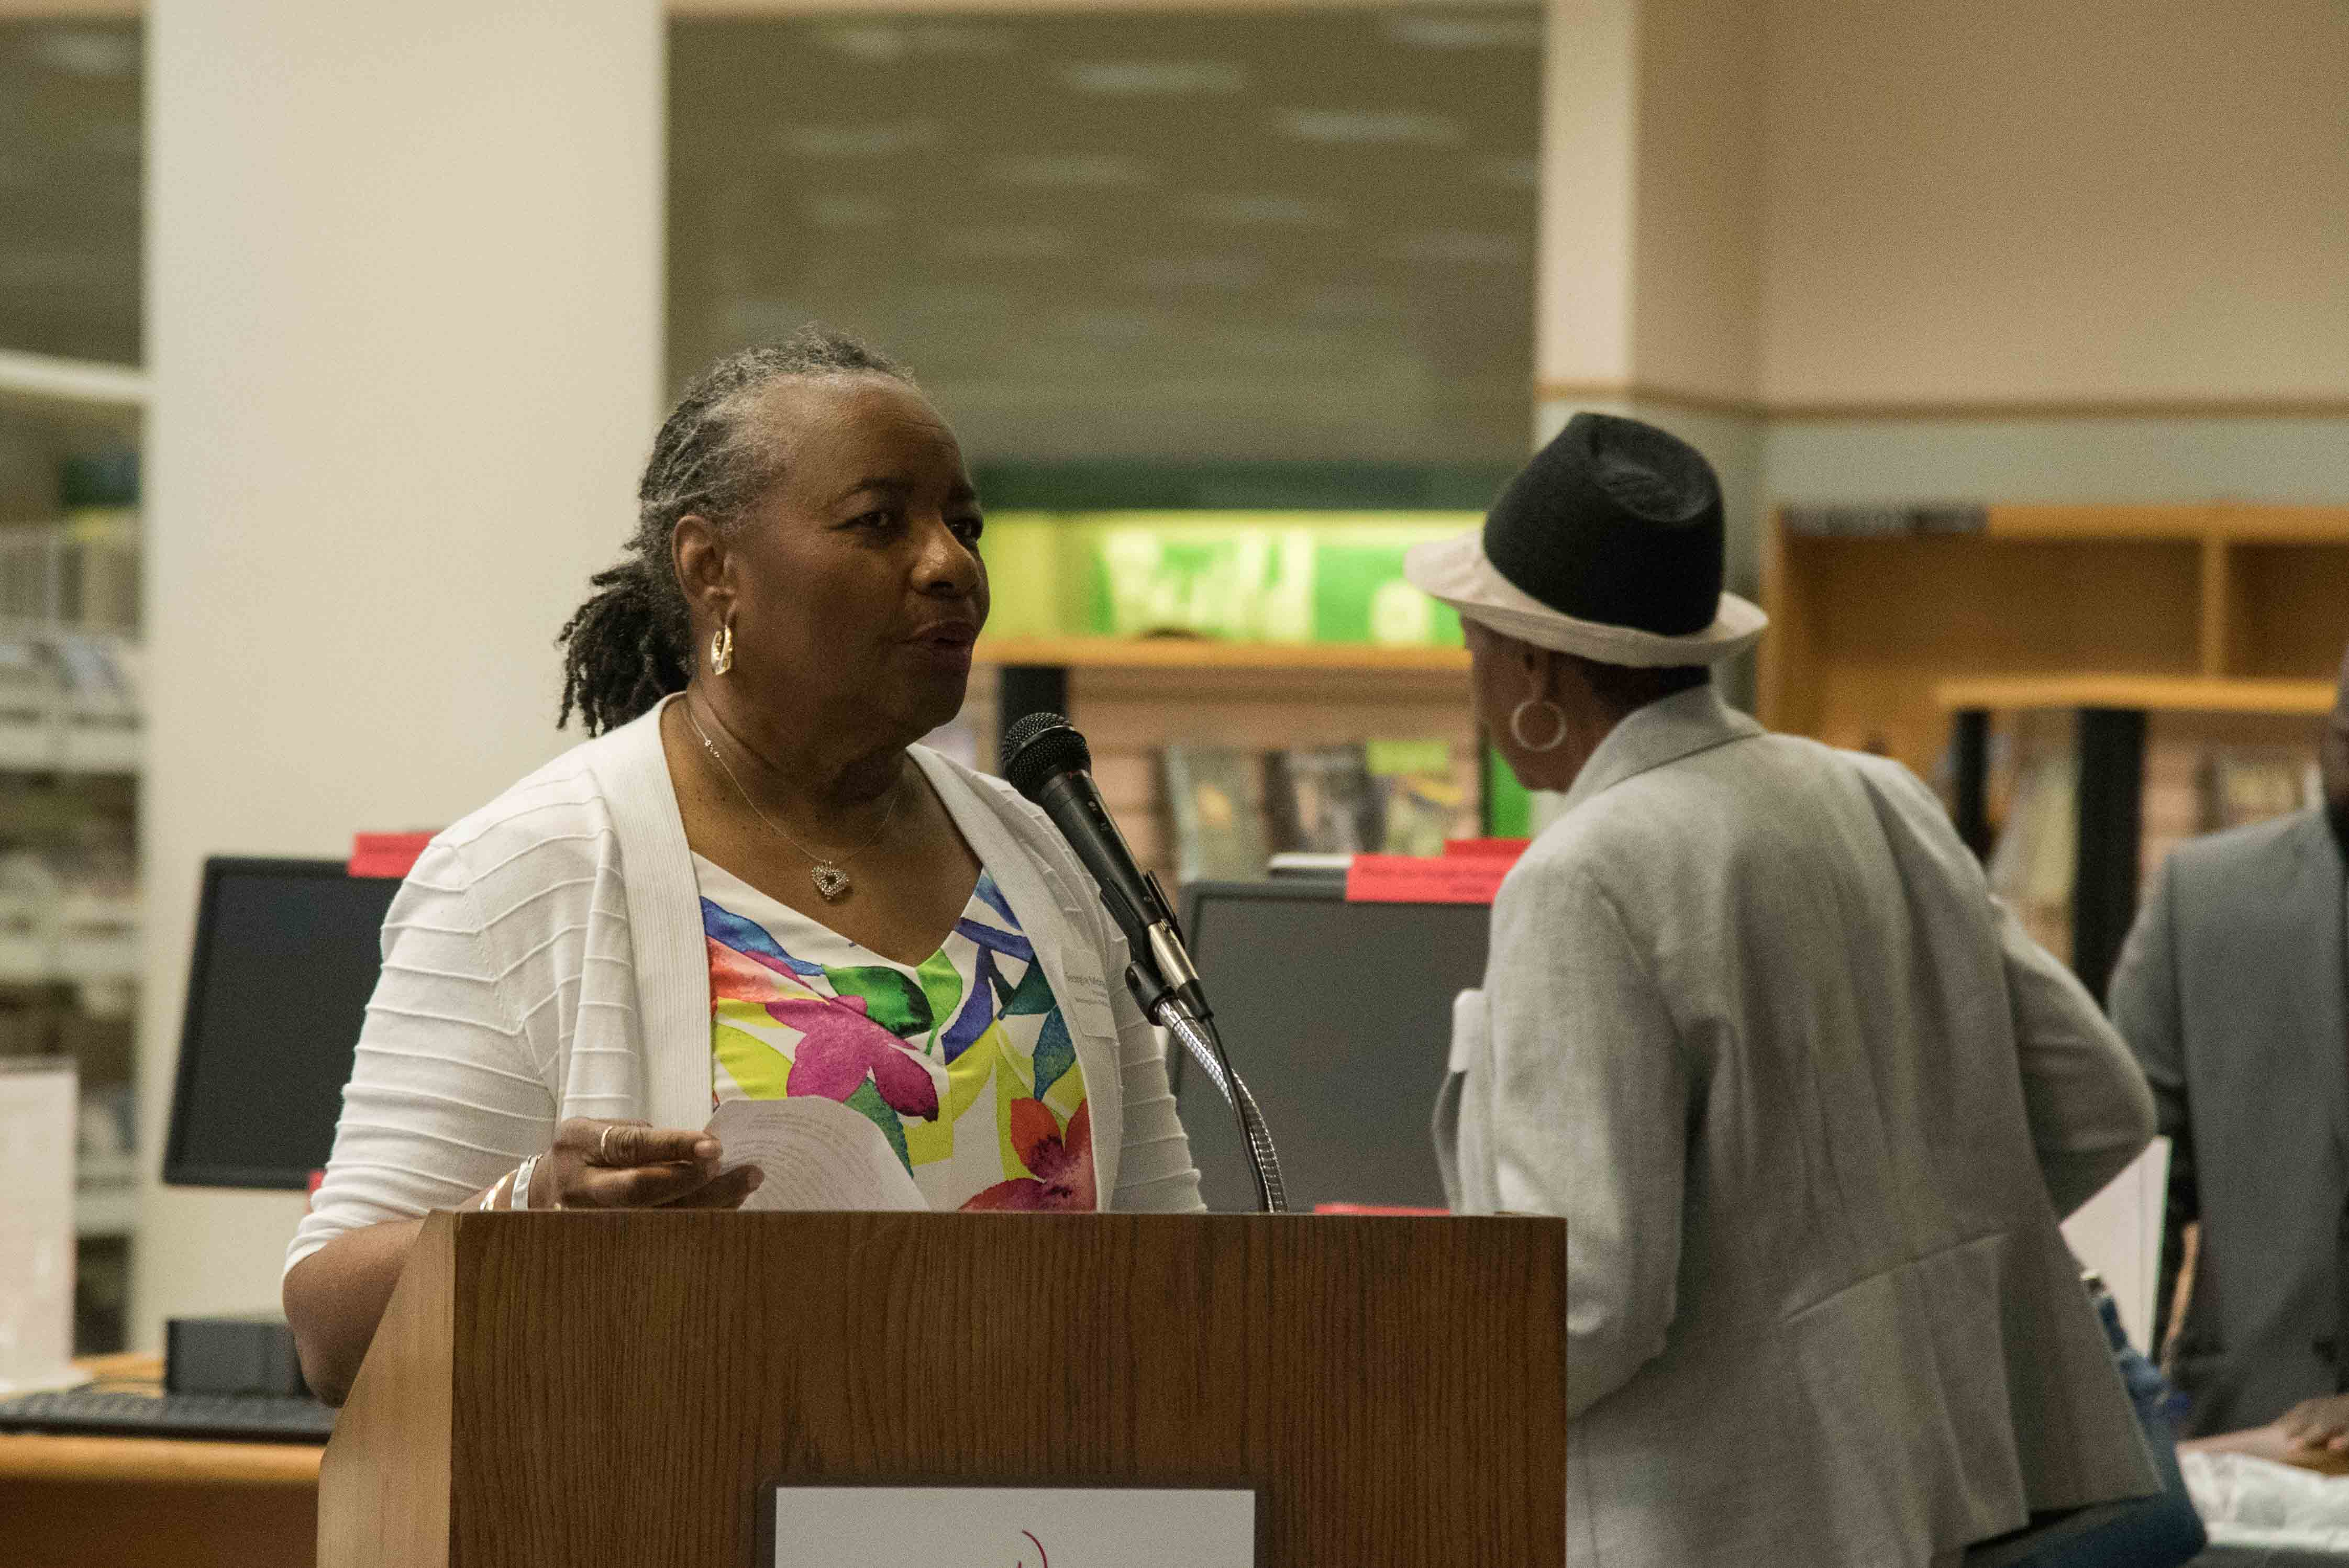 Birmingham Public Library Hosts Community Meet And Greet Ironcityk